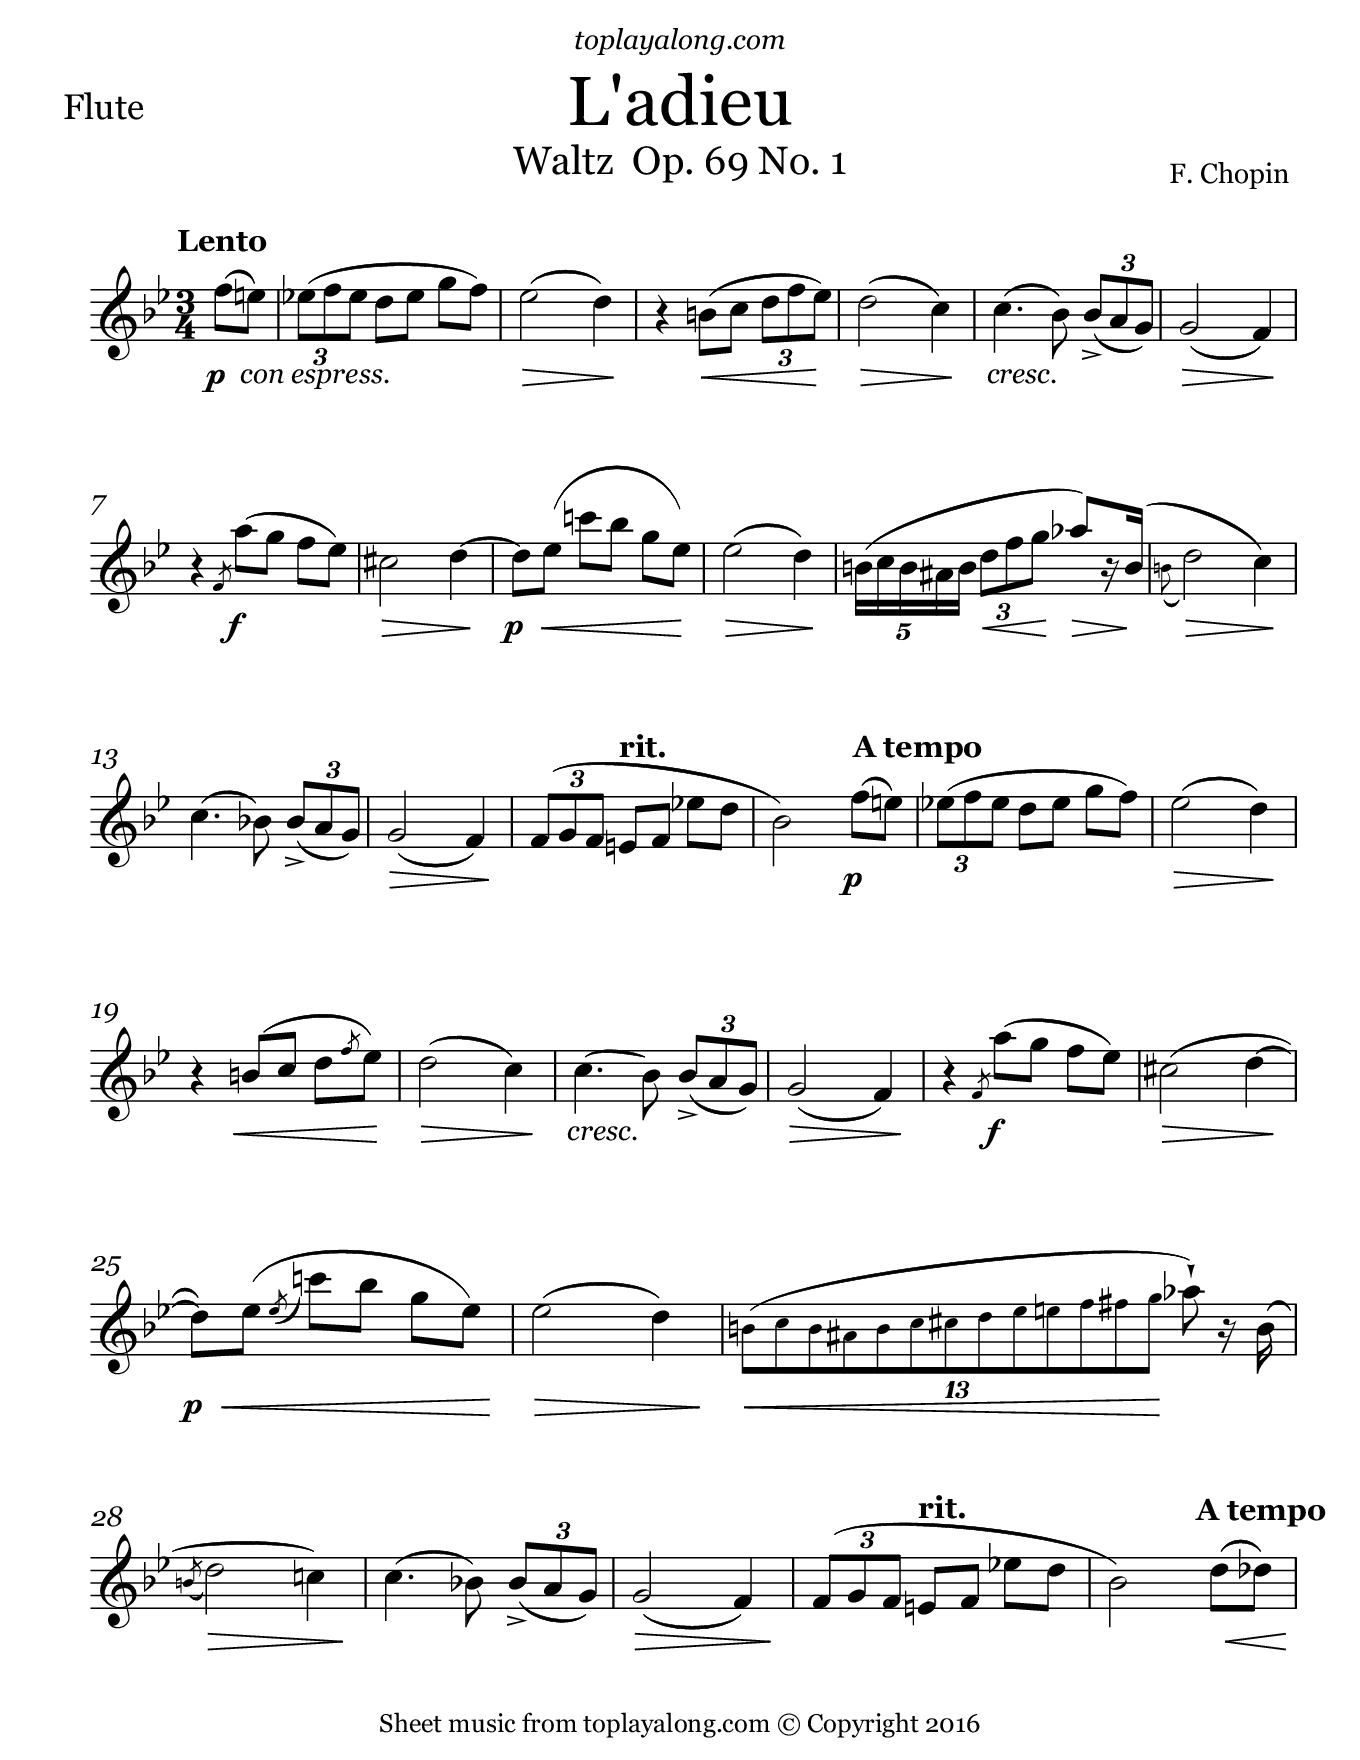 L'adieu Waltz Op. 69 No. 1 by Chopin. Sheet music for Flute, page 1.